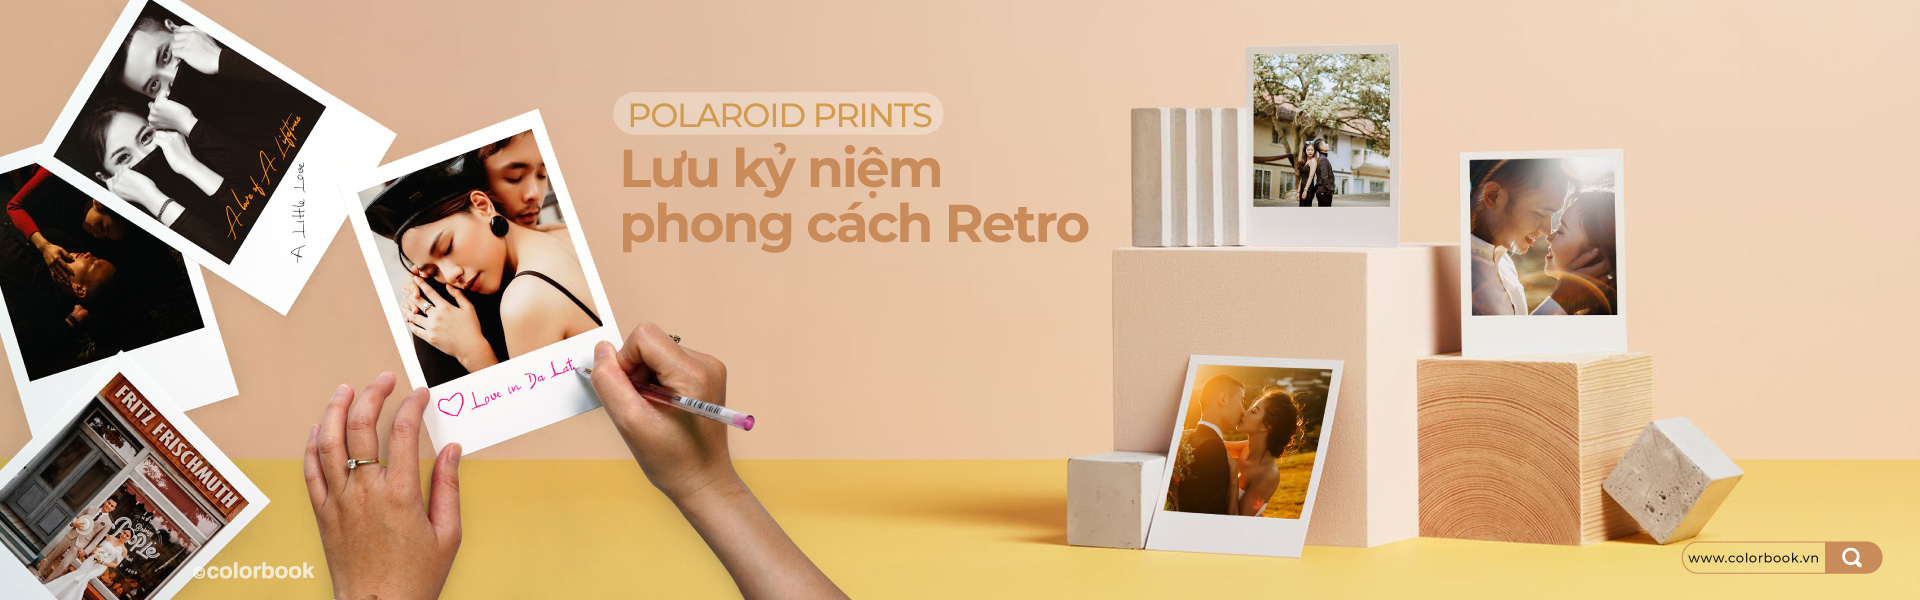 in-anh-Polaroid-banner